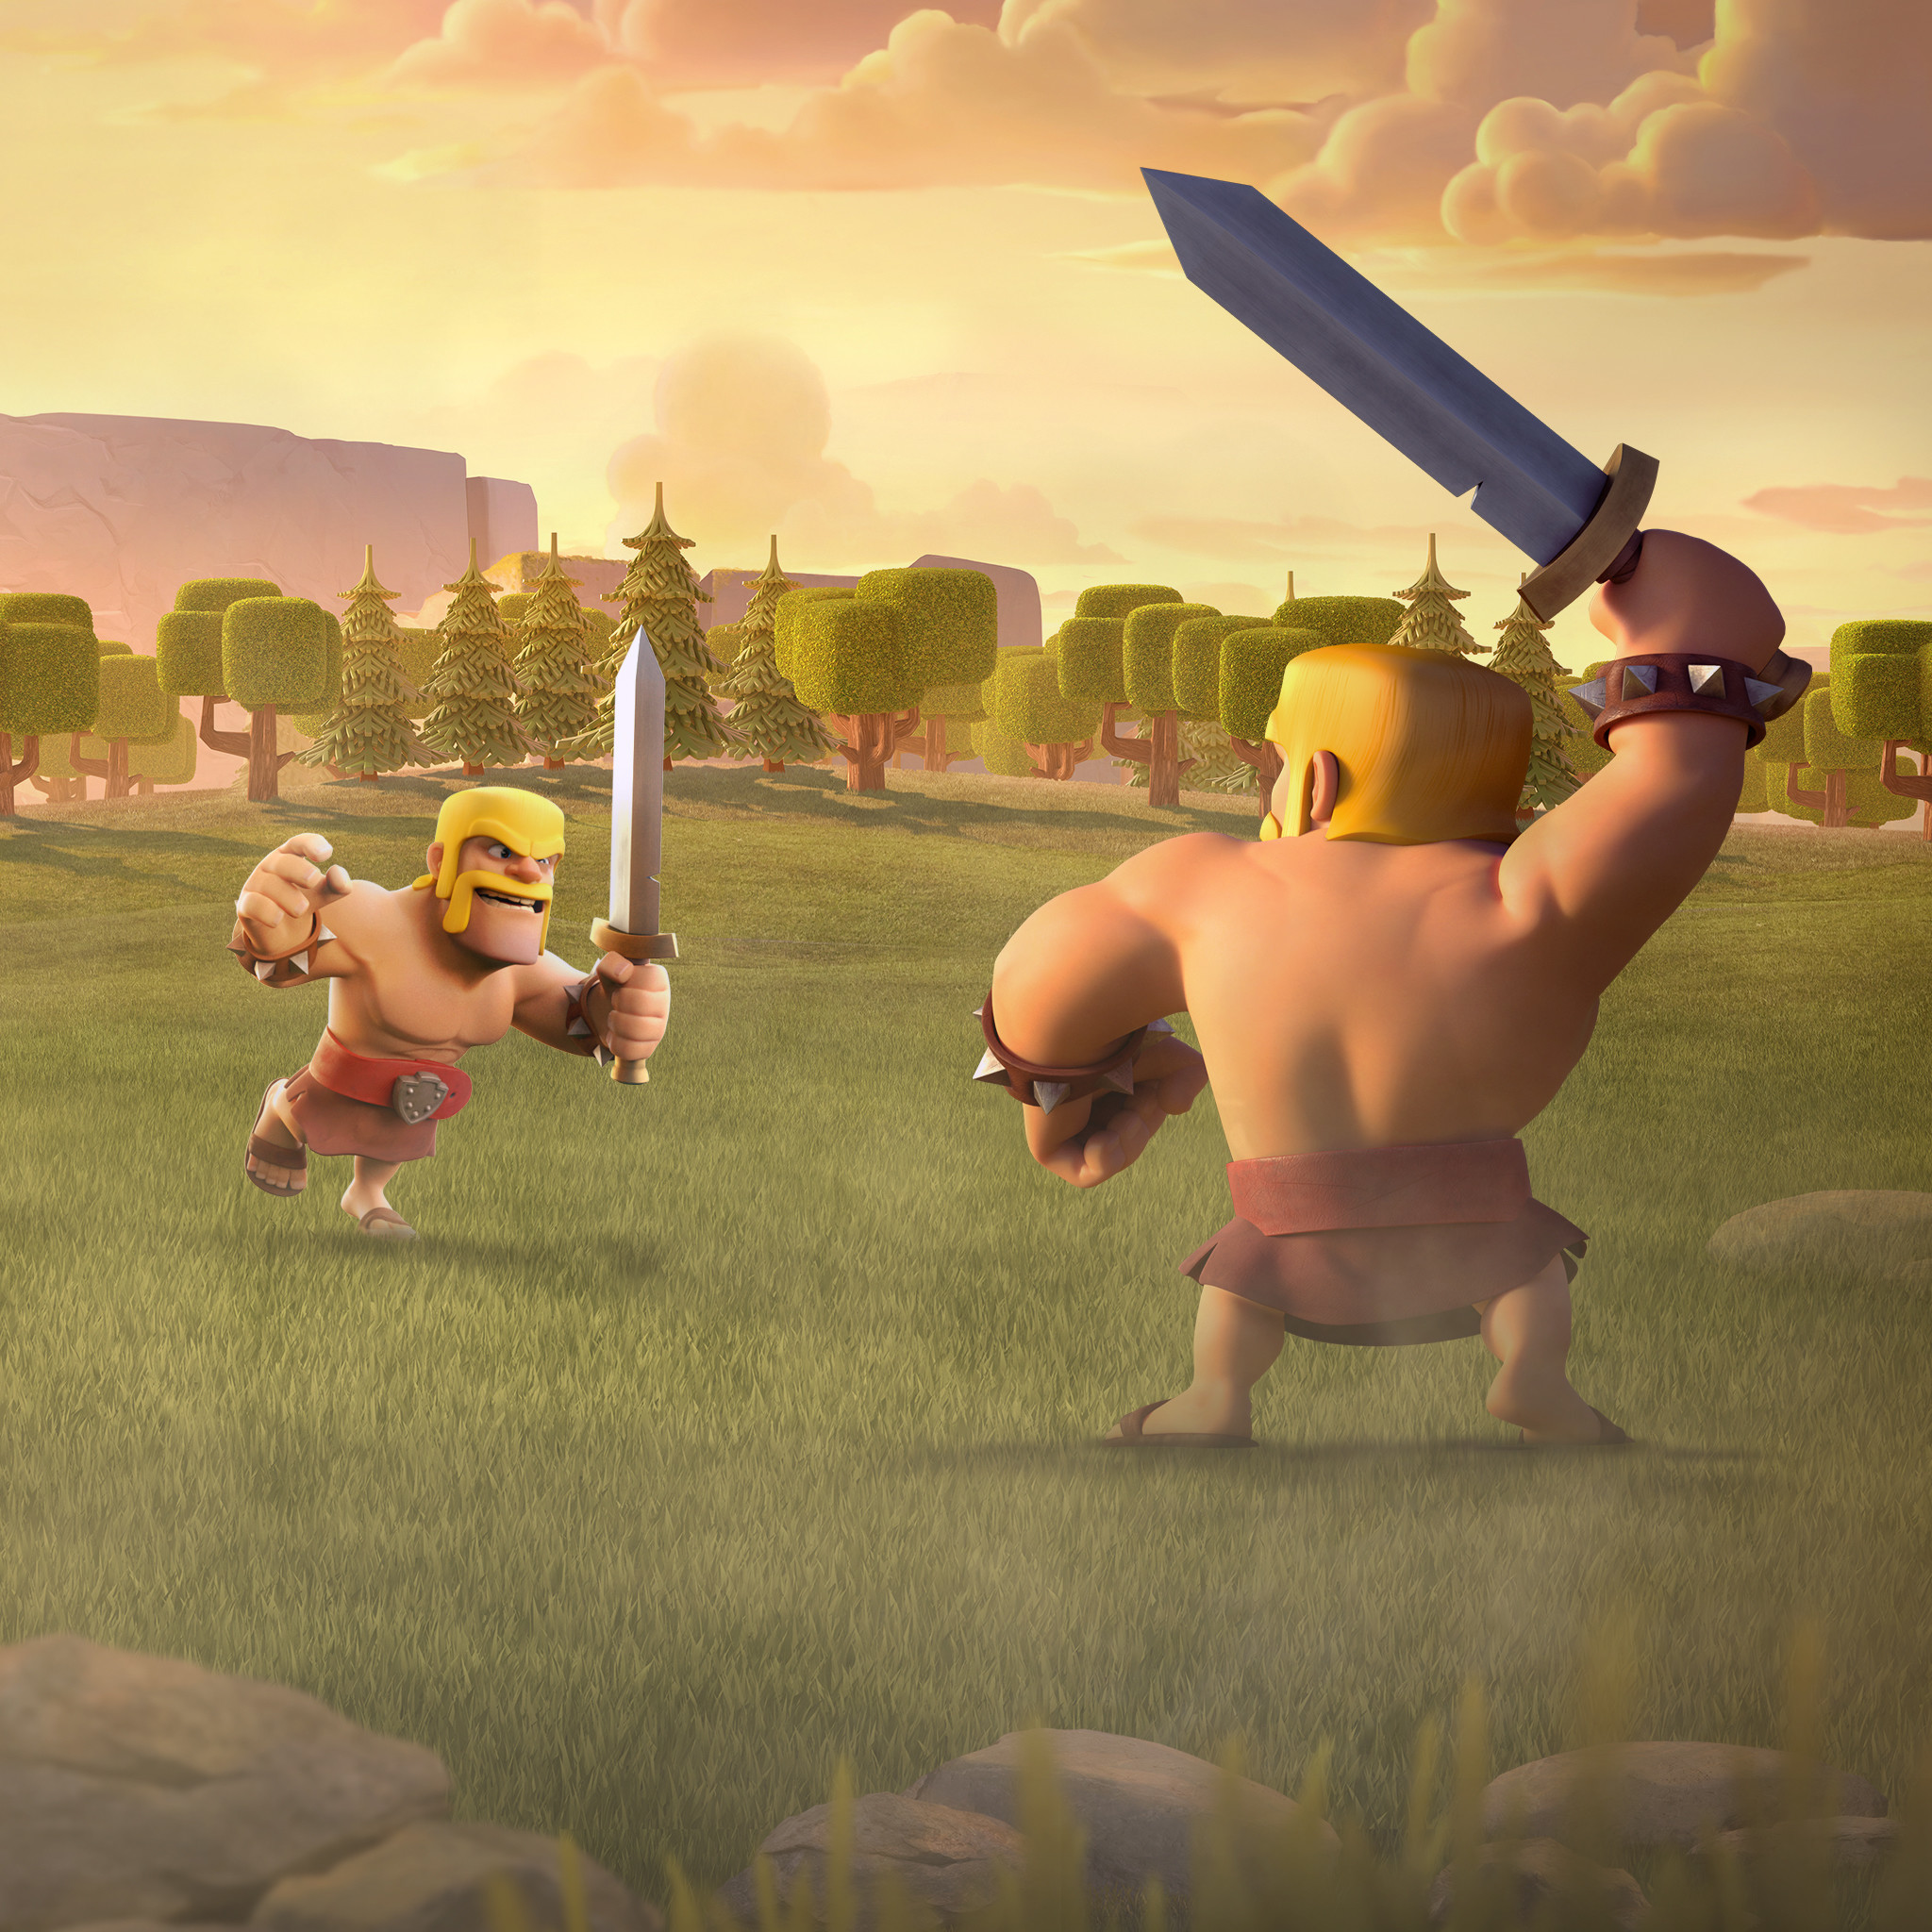 Barbarian Clash of Clans 2048×1152 Resolution